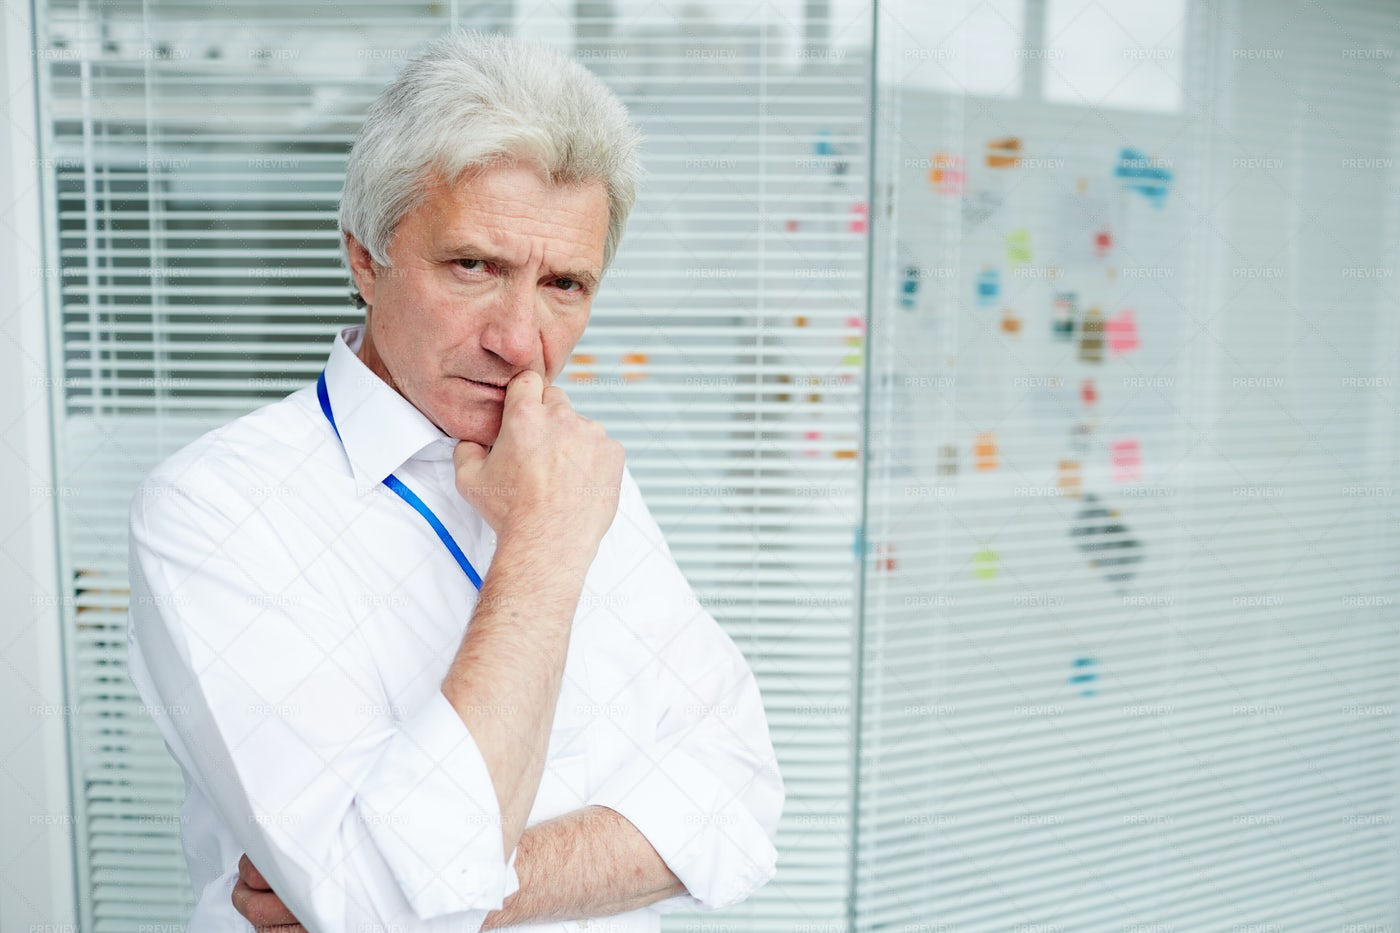 Concentrated On Work: Stock Photos